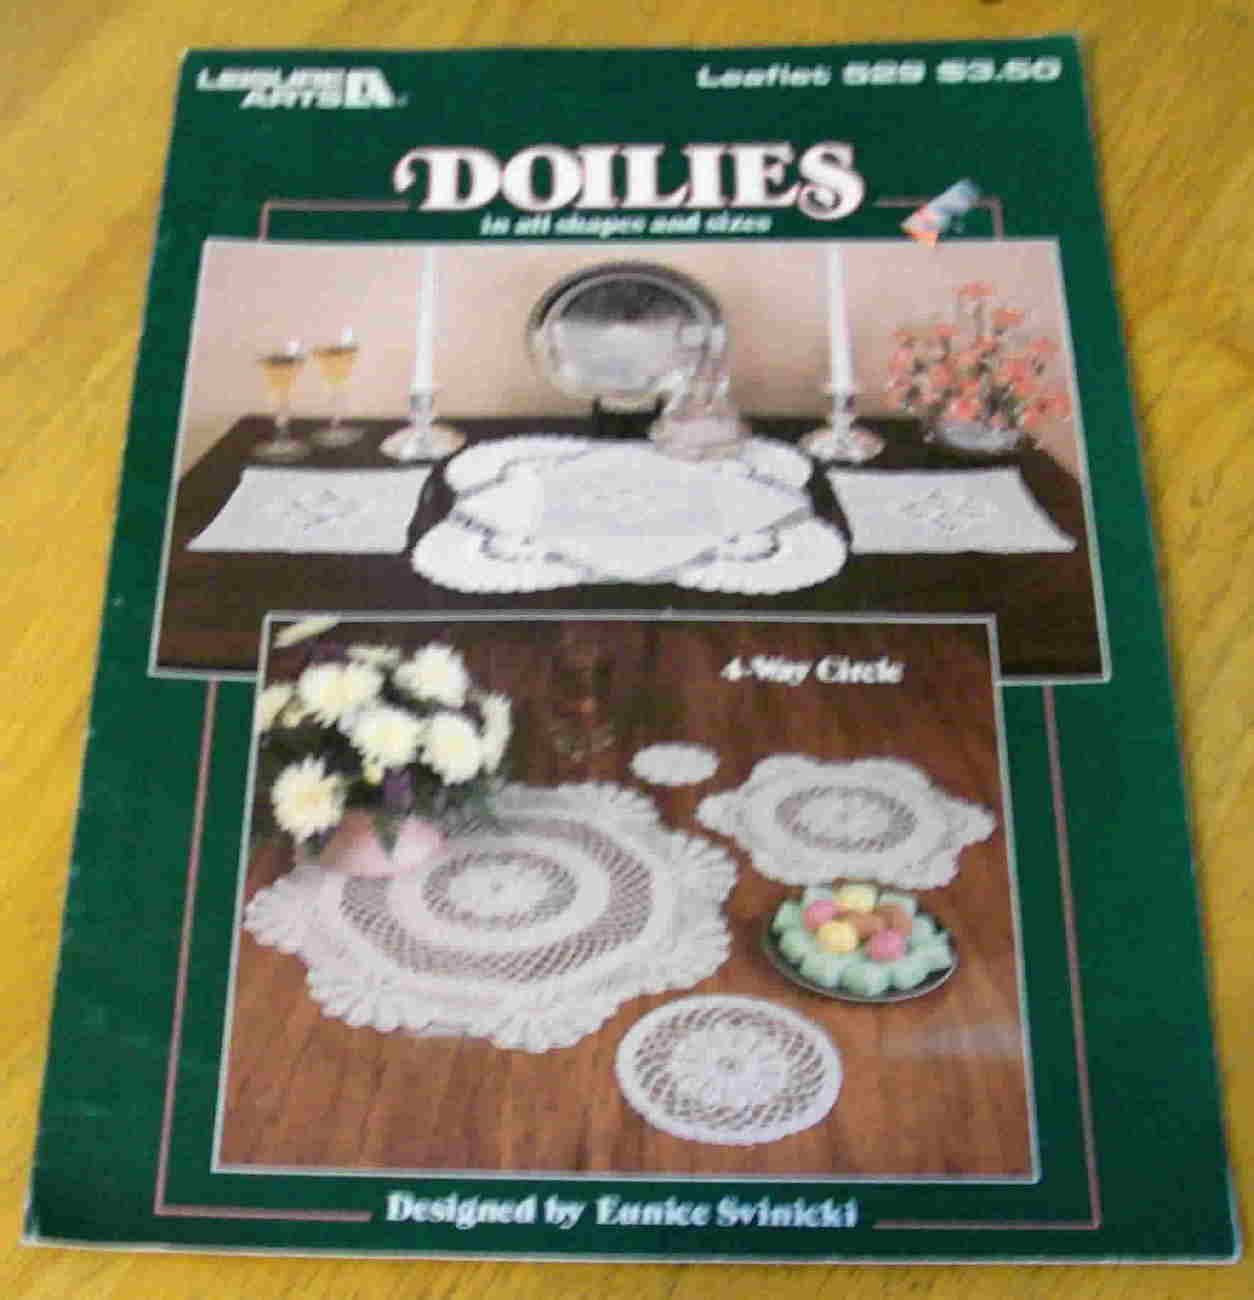 Crochet Doilies In All Shapes and Sizes, Leisure Arts